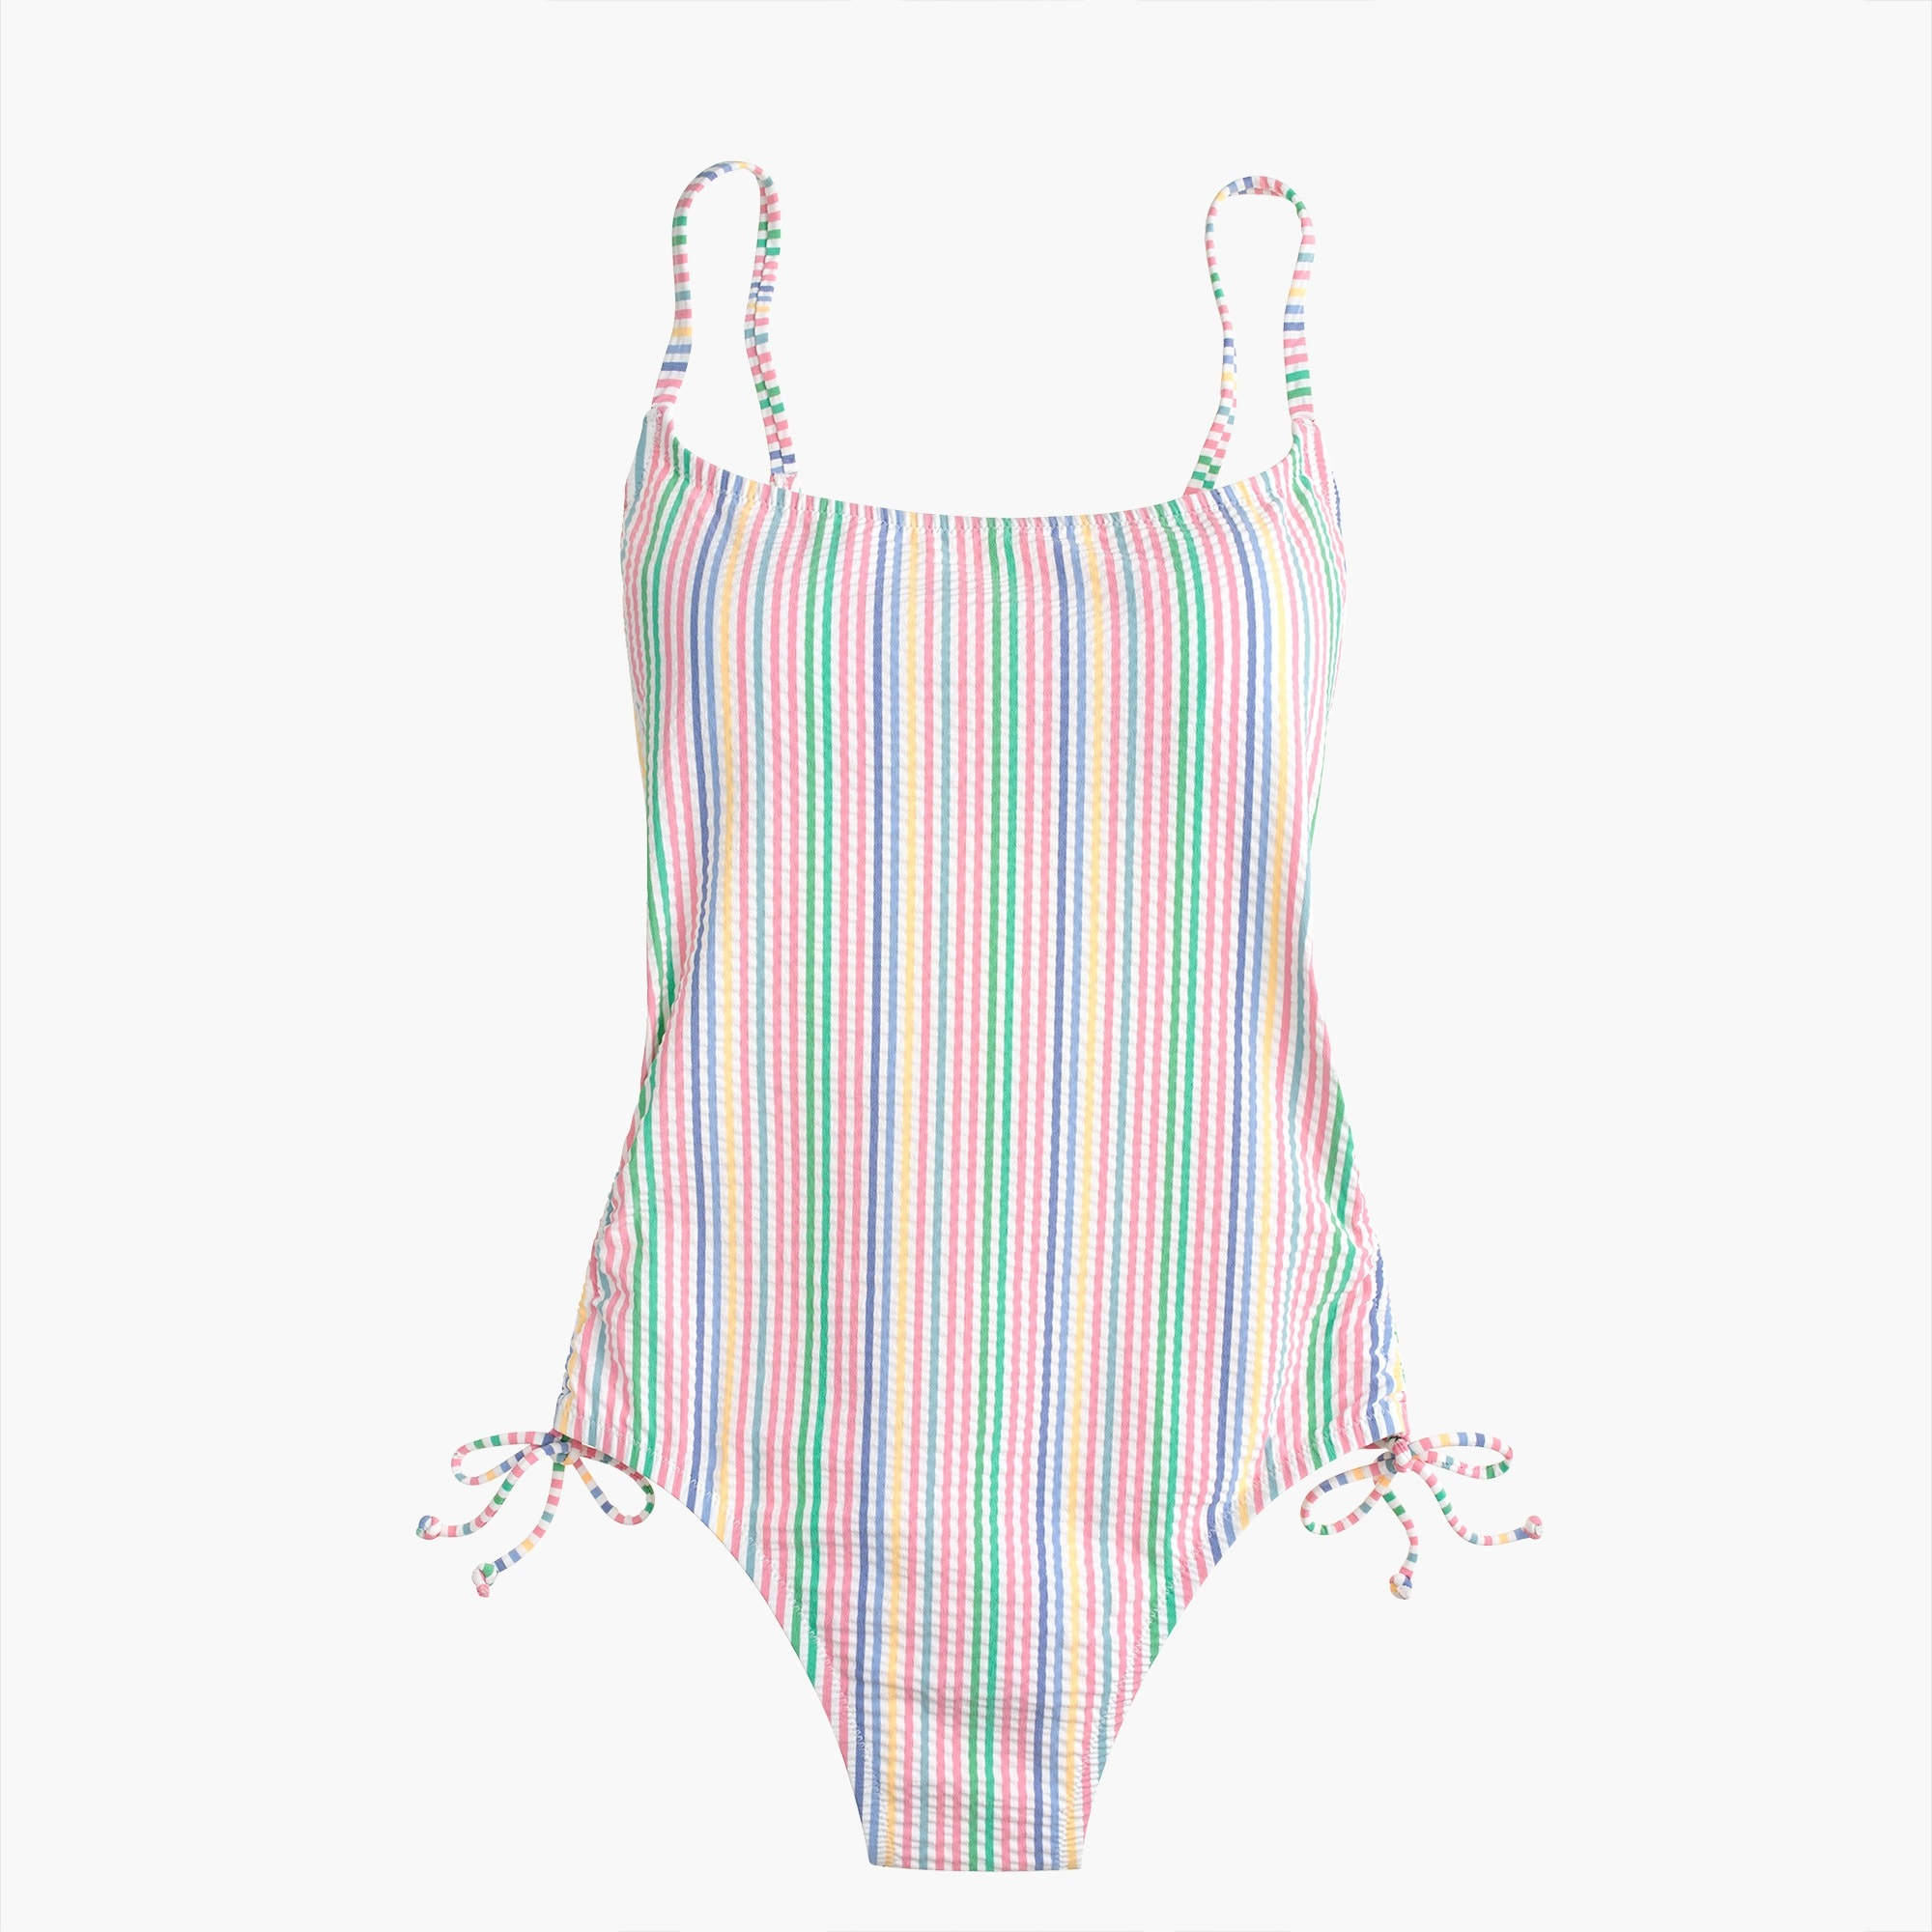 Image 2 for Ruched side one-piece swimsuit in rainbow seersucker